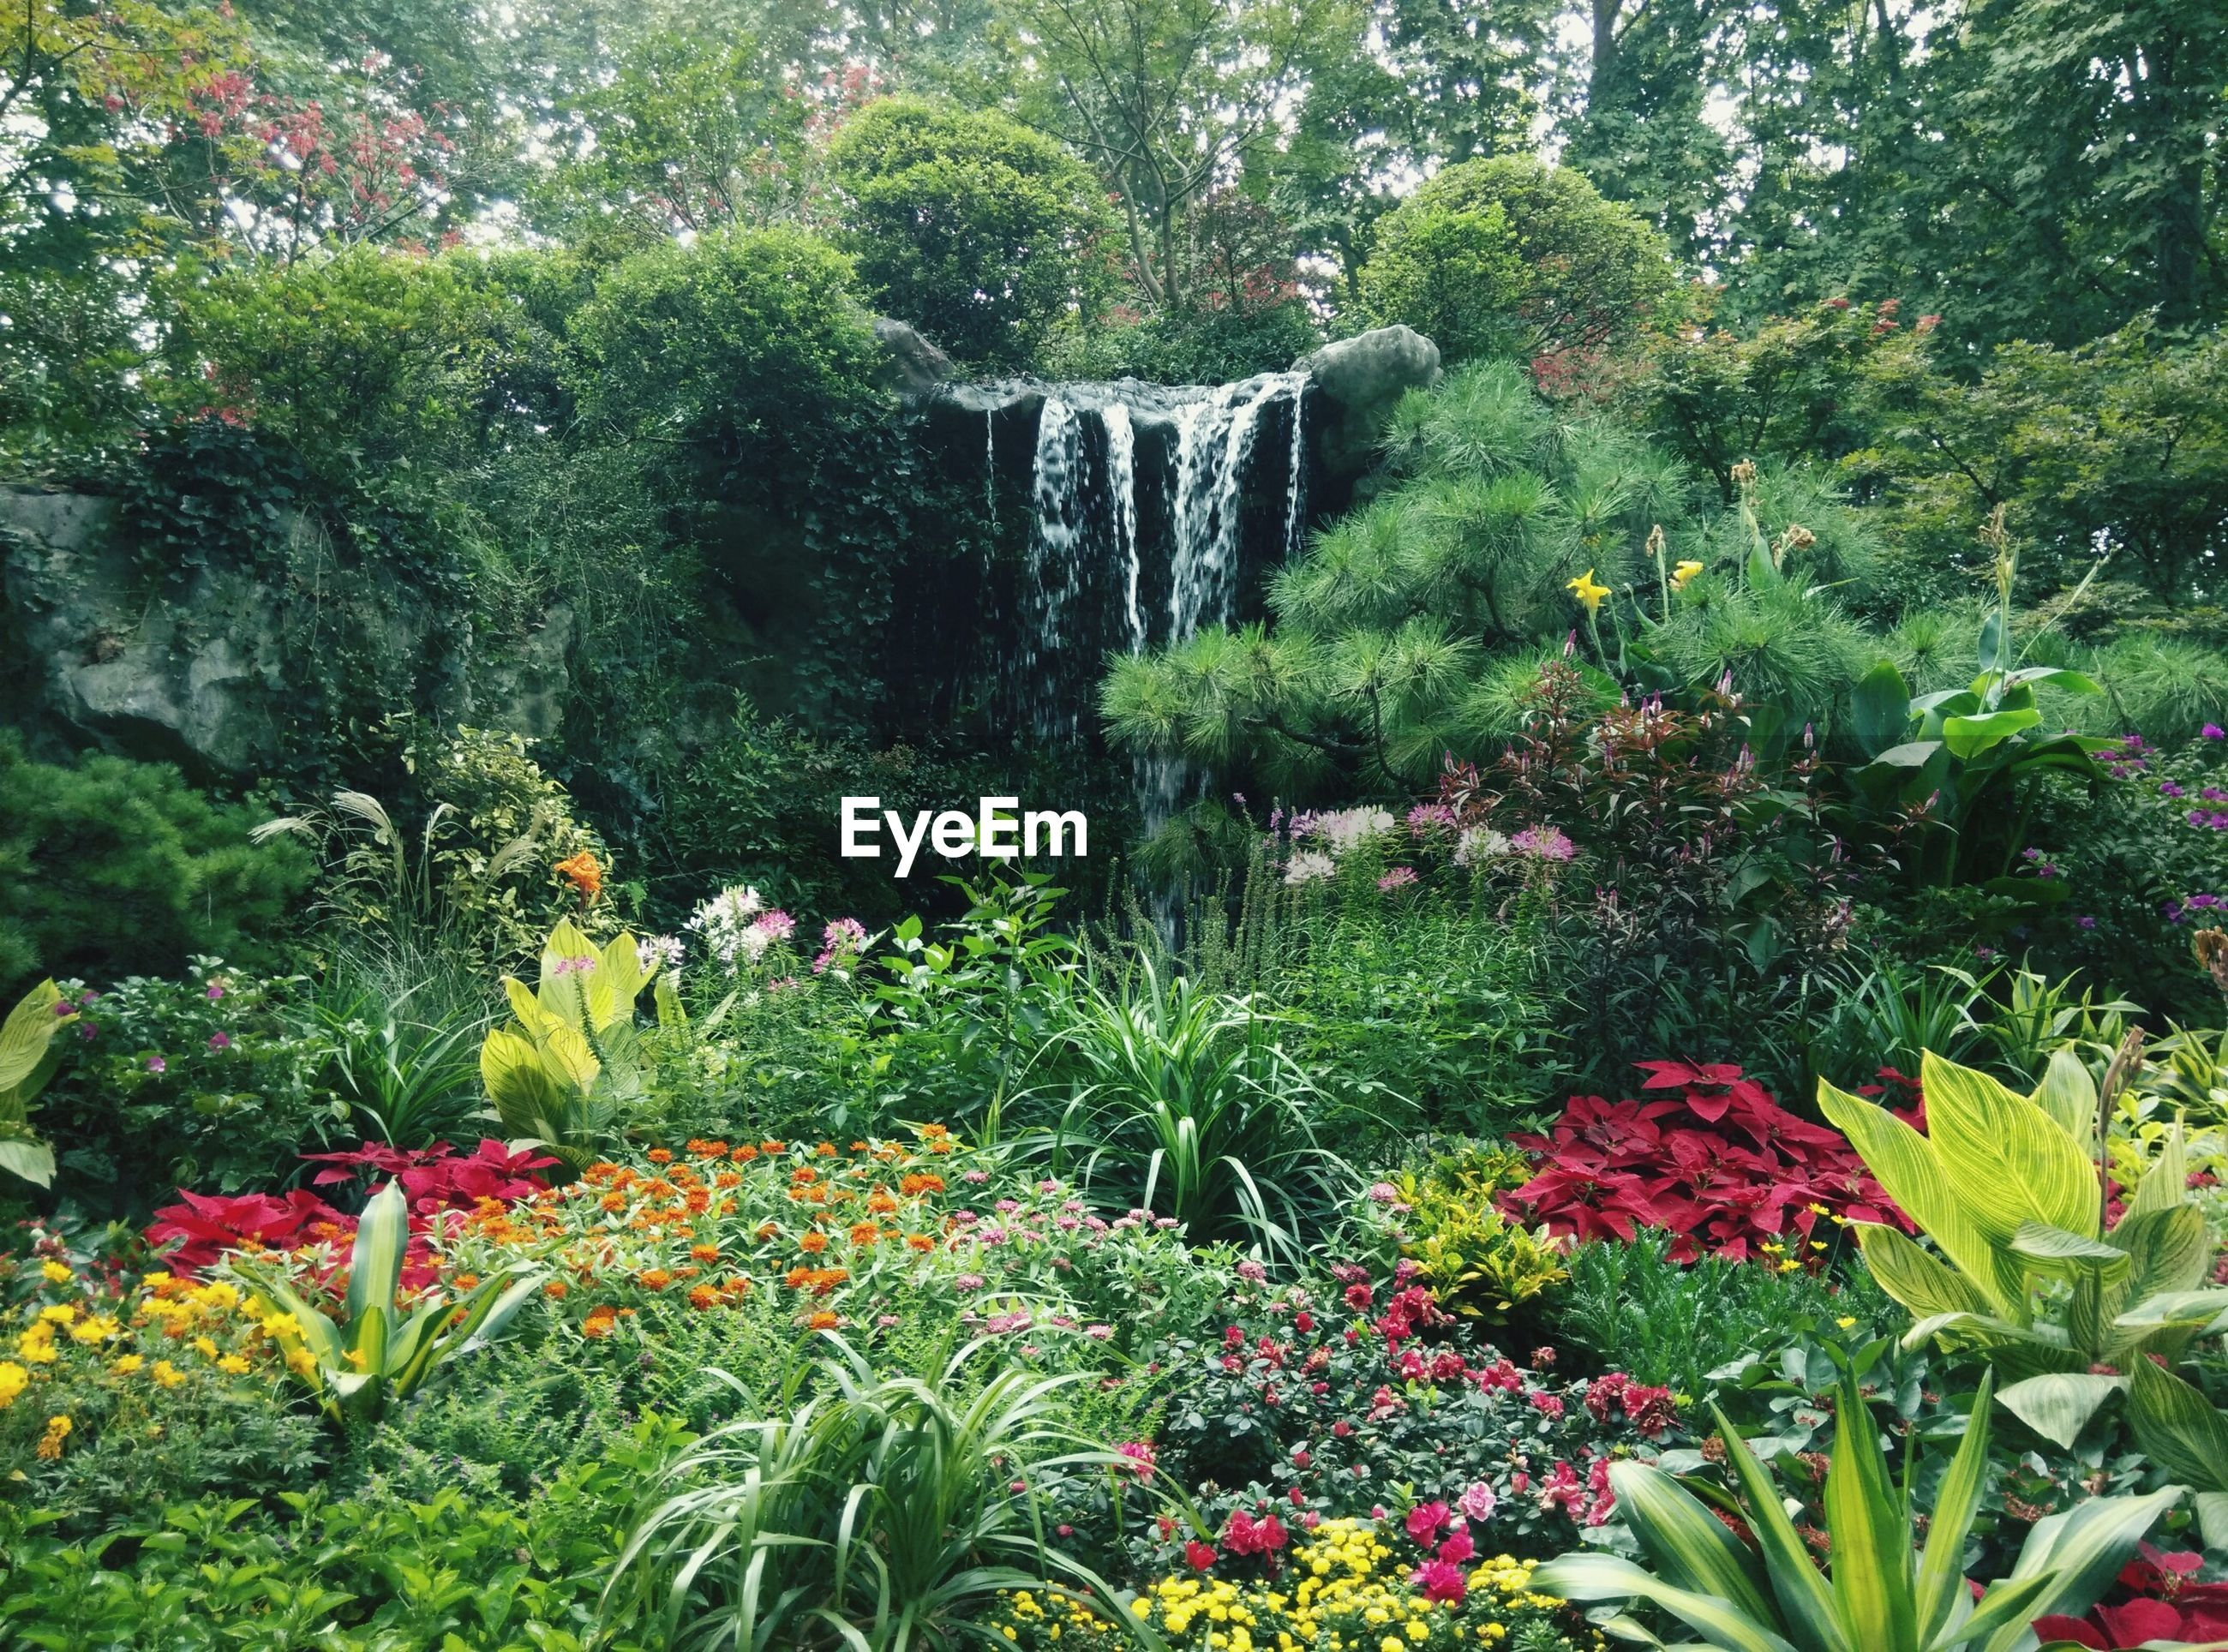 flower, growth, freshness, plant, beauty in nature, fragility, green color, nature, tree, blooming, petal, leaf, in bloom, formal garden, park - man made space, blossom, day, multi colored, lush foliage, growing